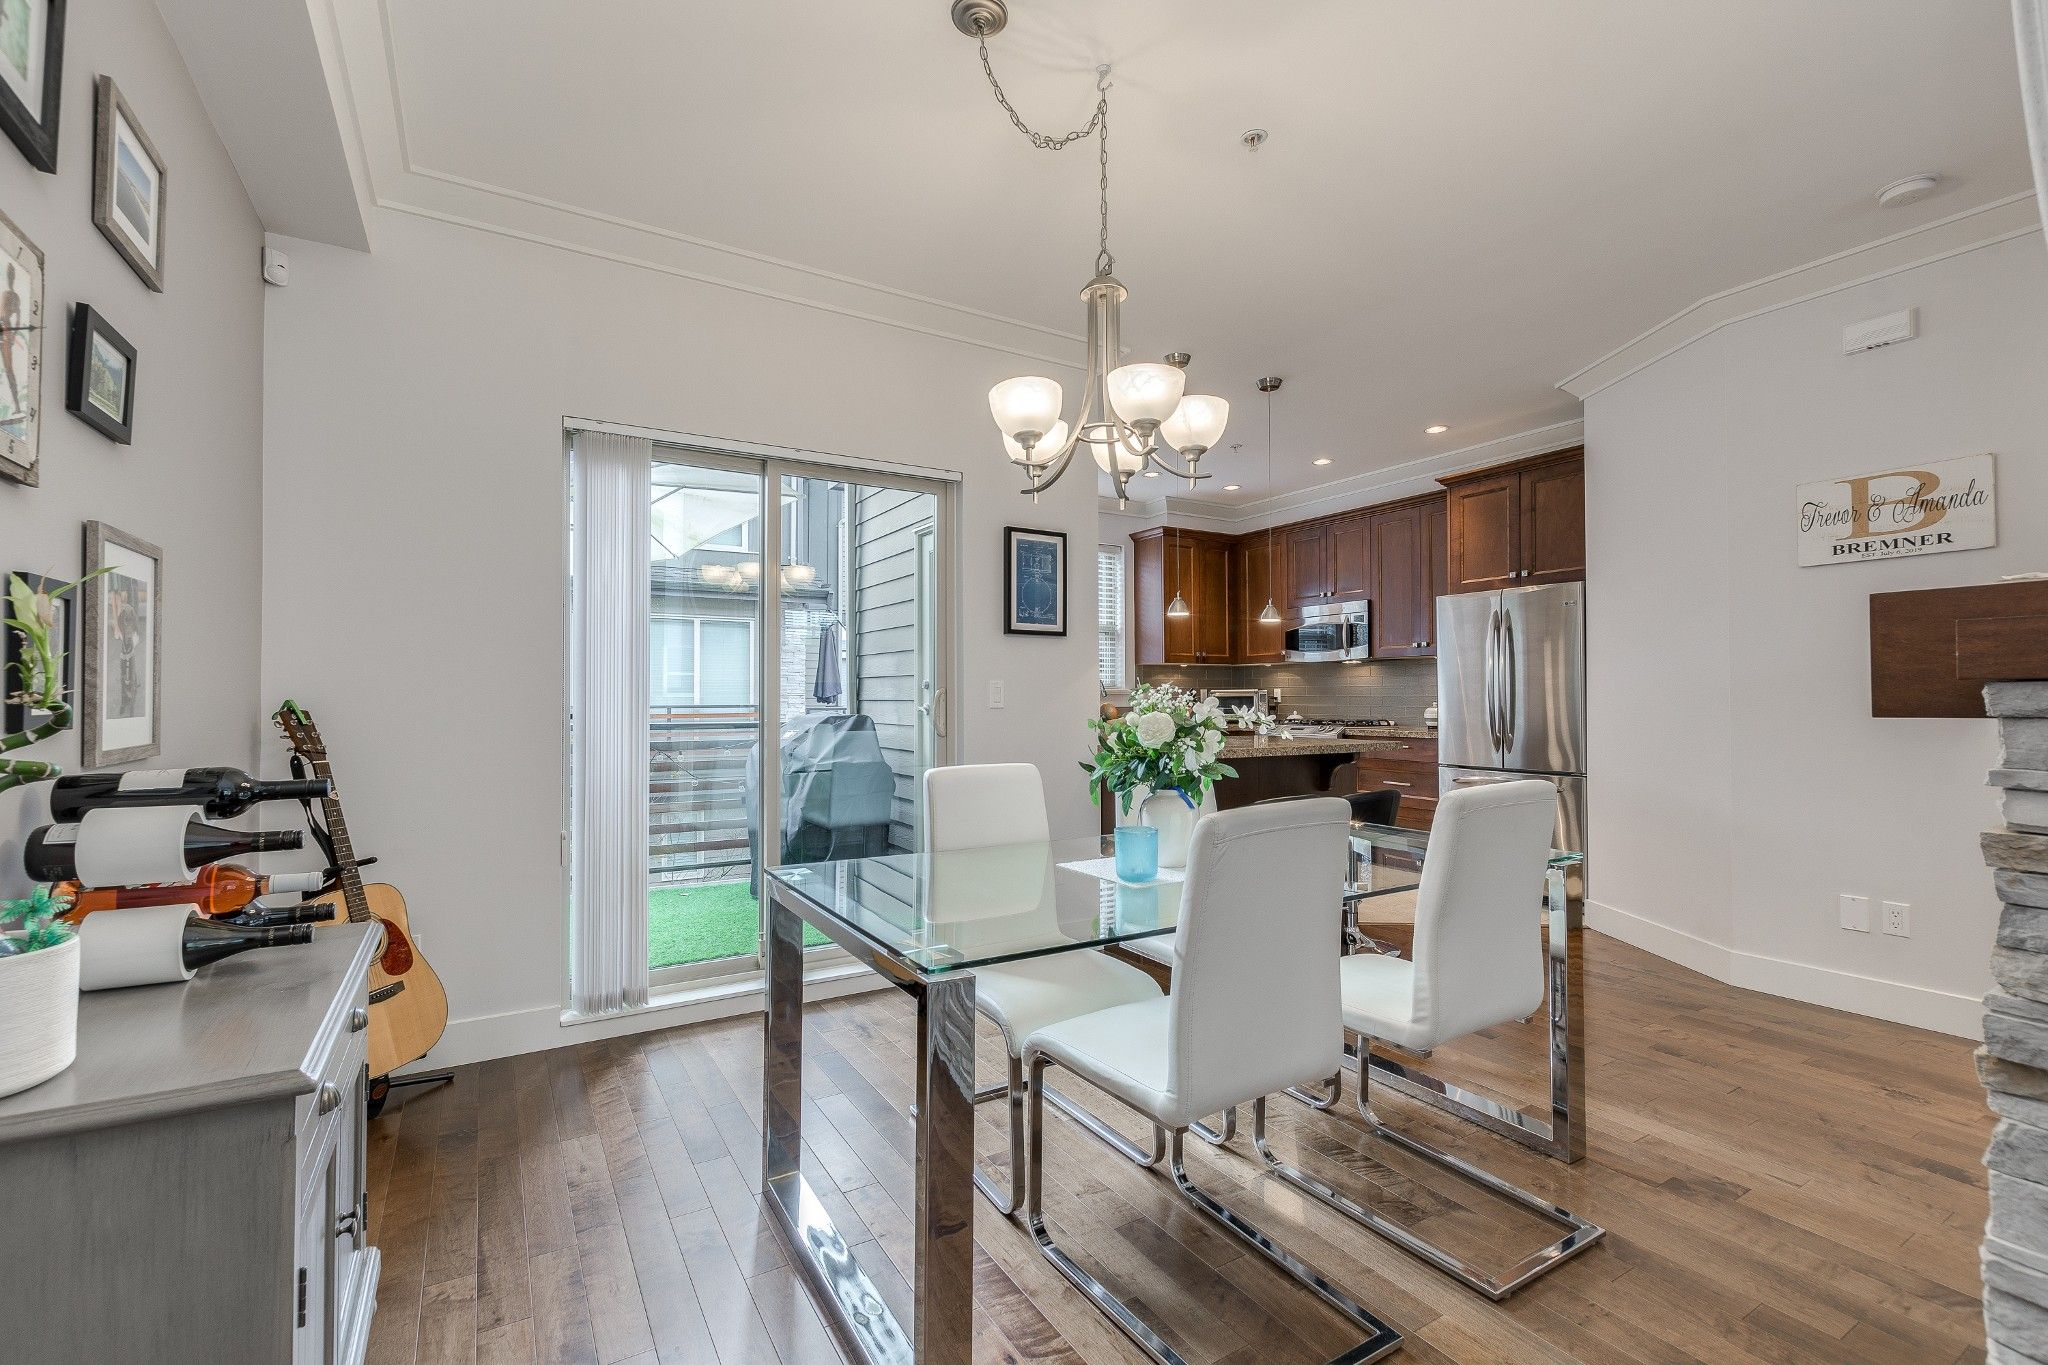 Photo 9: Photos: 24 897 Premier Street in : Lynnmour Townhouse for sale (North Vancouver)